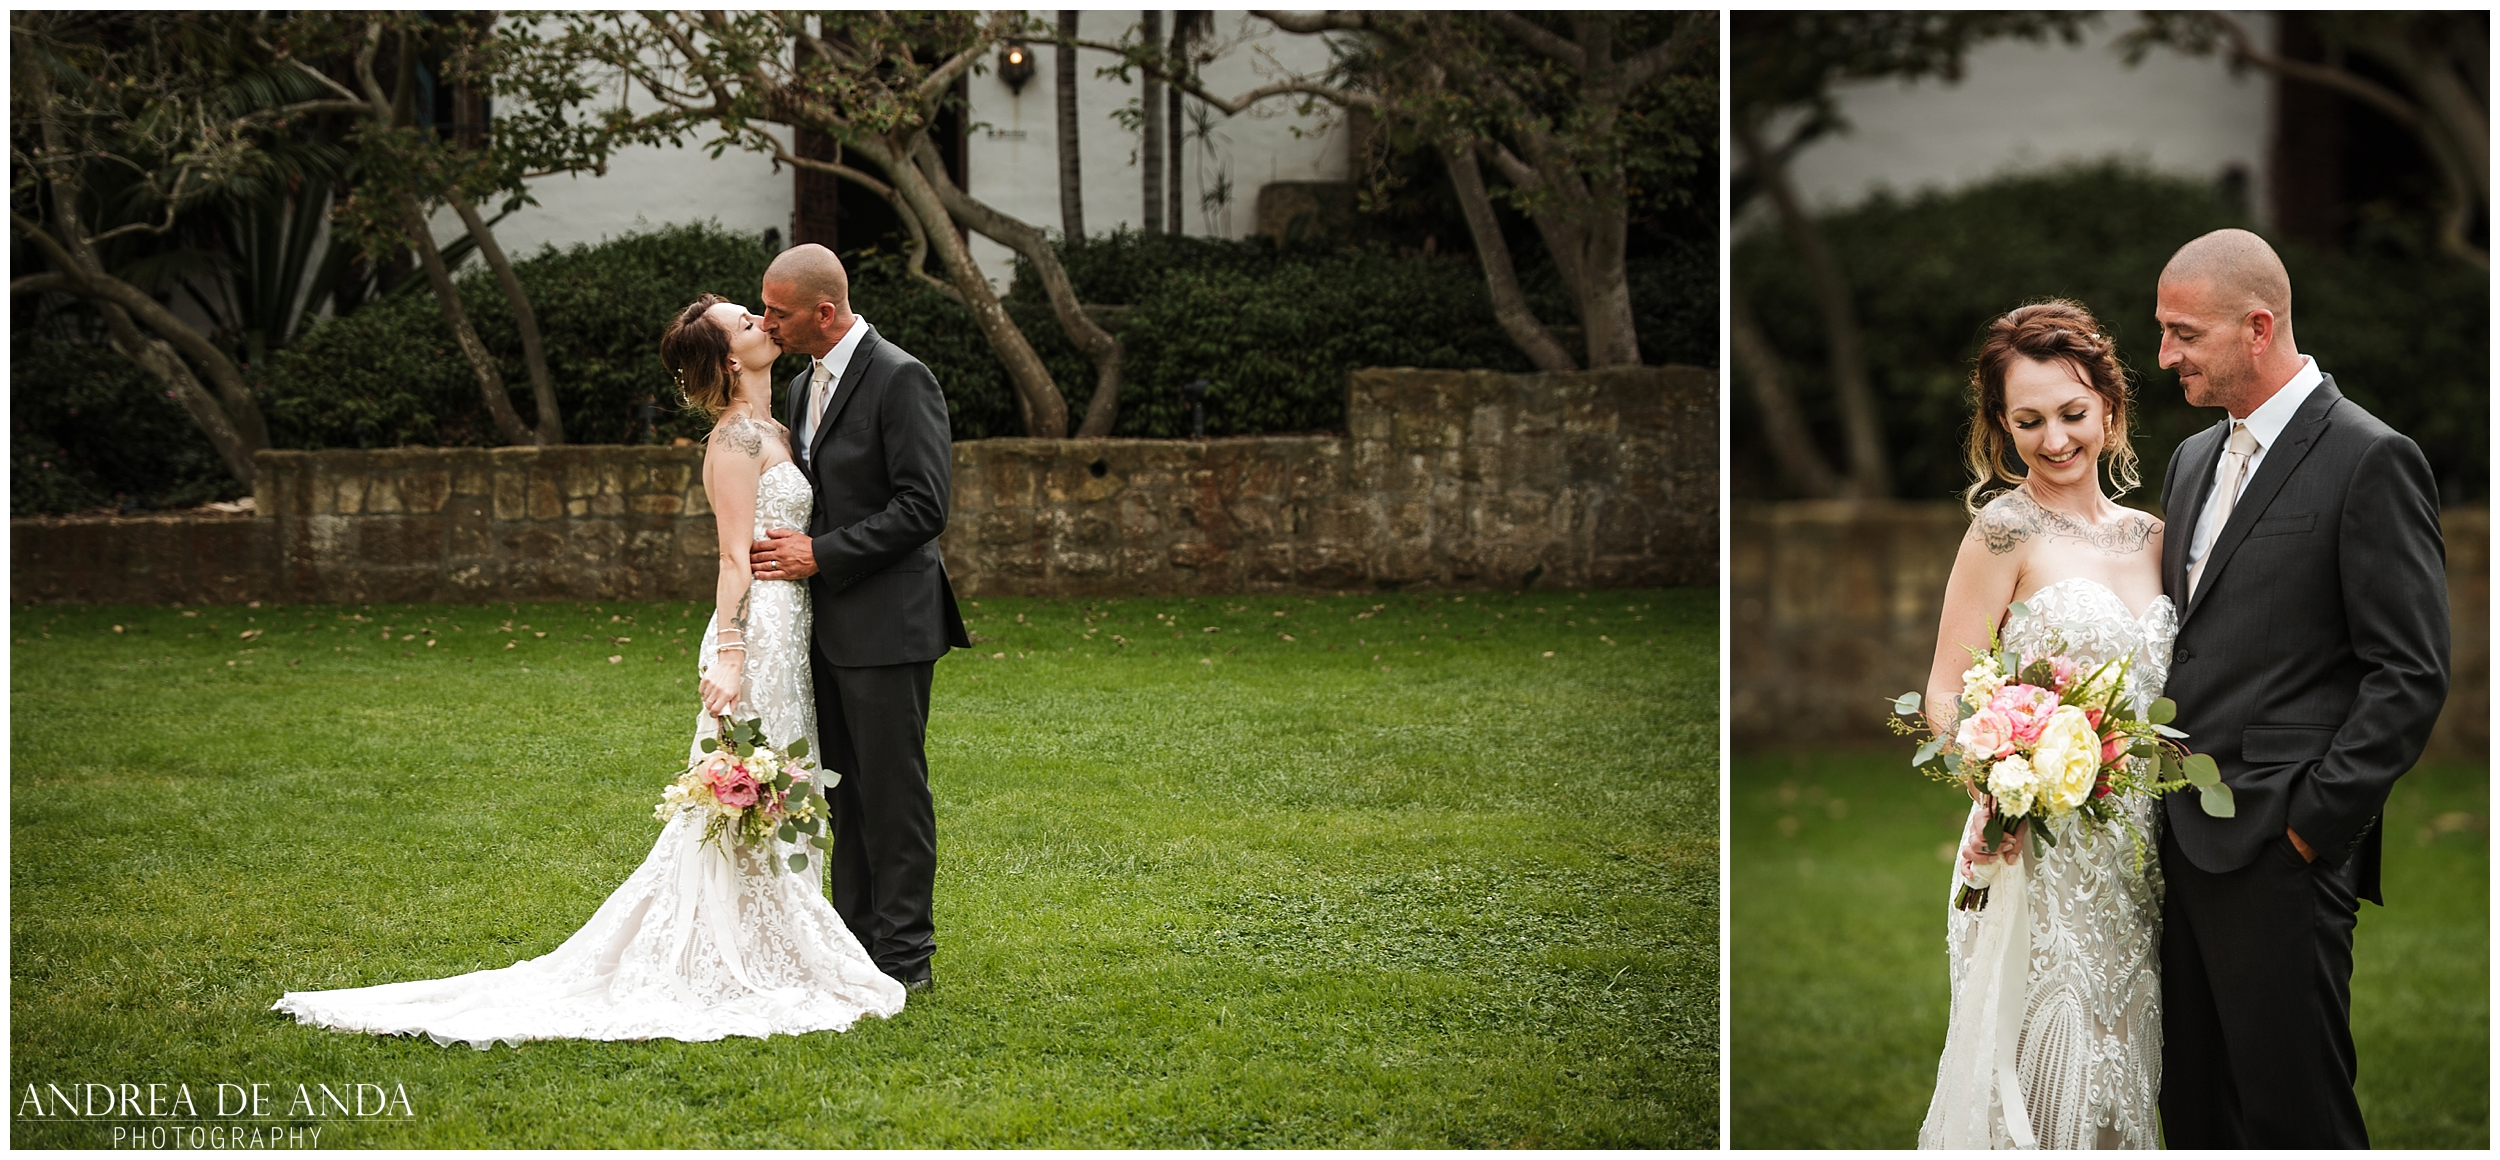 Santa Barbara Courthouse Elopement by Andrea de Anda Photography__0009.jpg